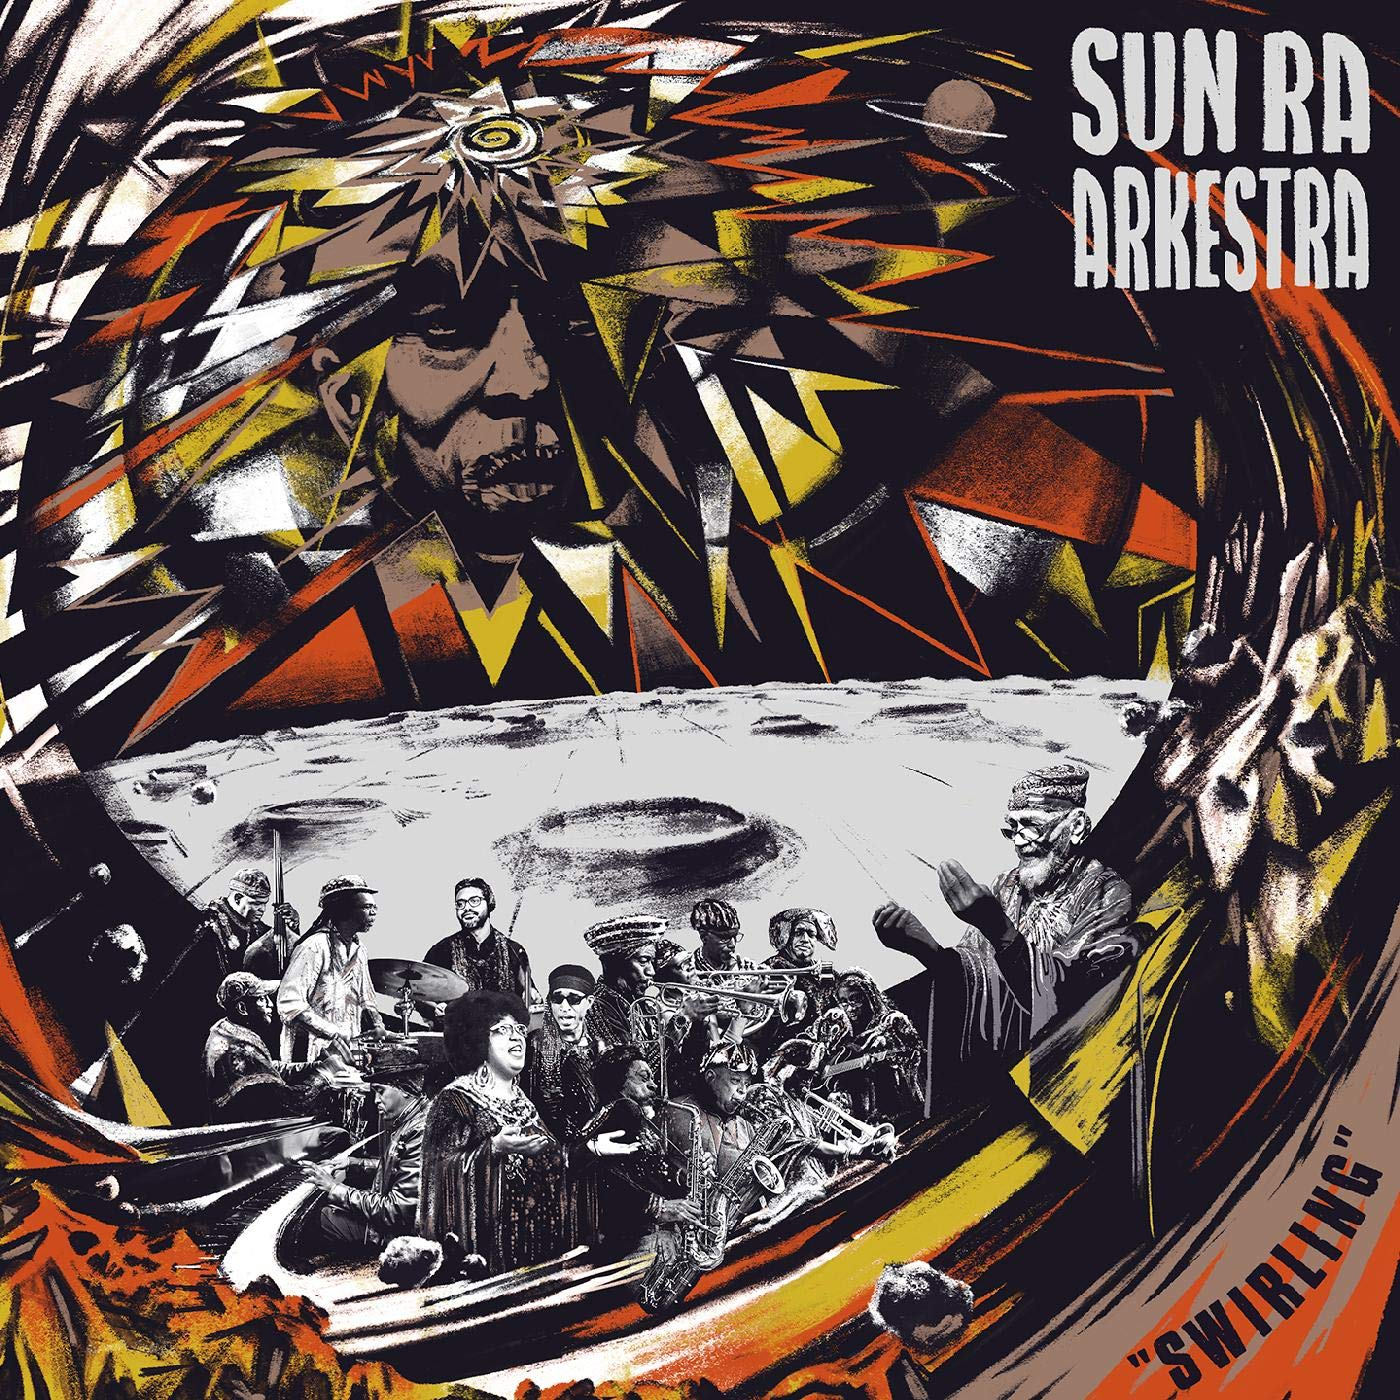 SUN RA ARKESTRA UNDER THE DIRECTION OF MARSHALL ALLEN - Swirling cover